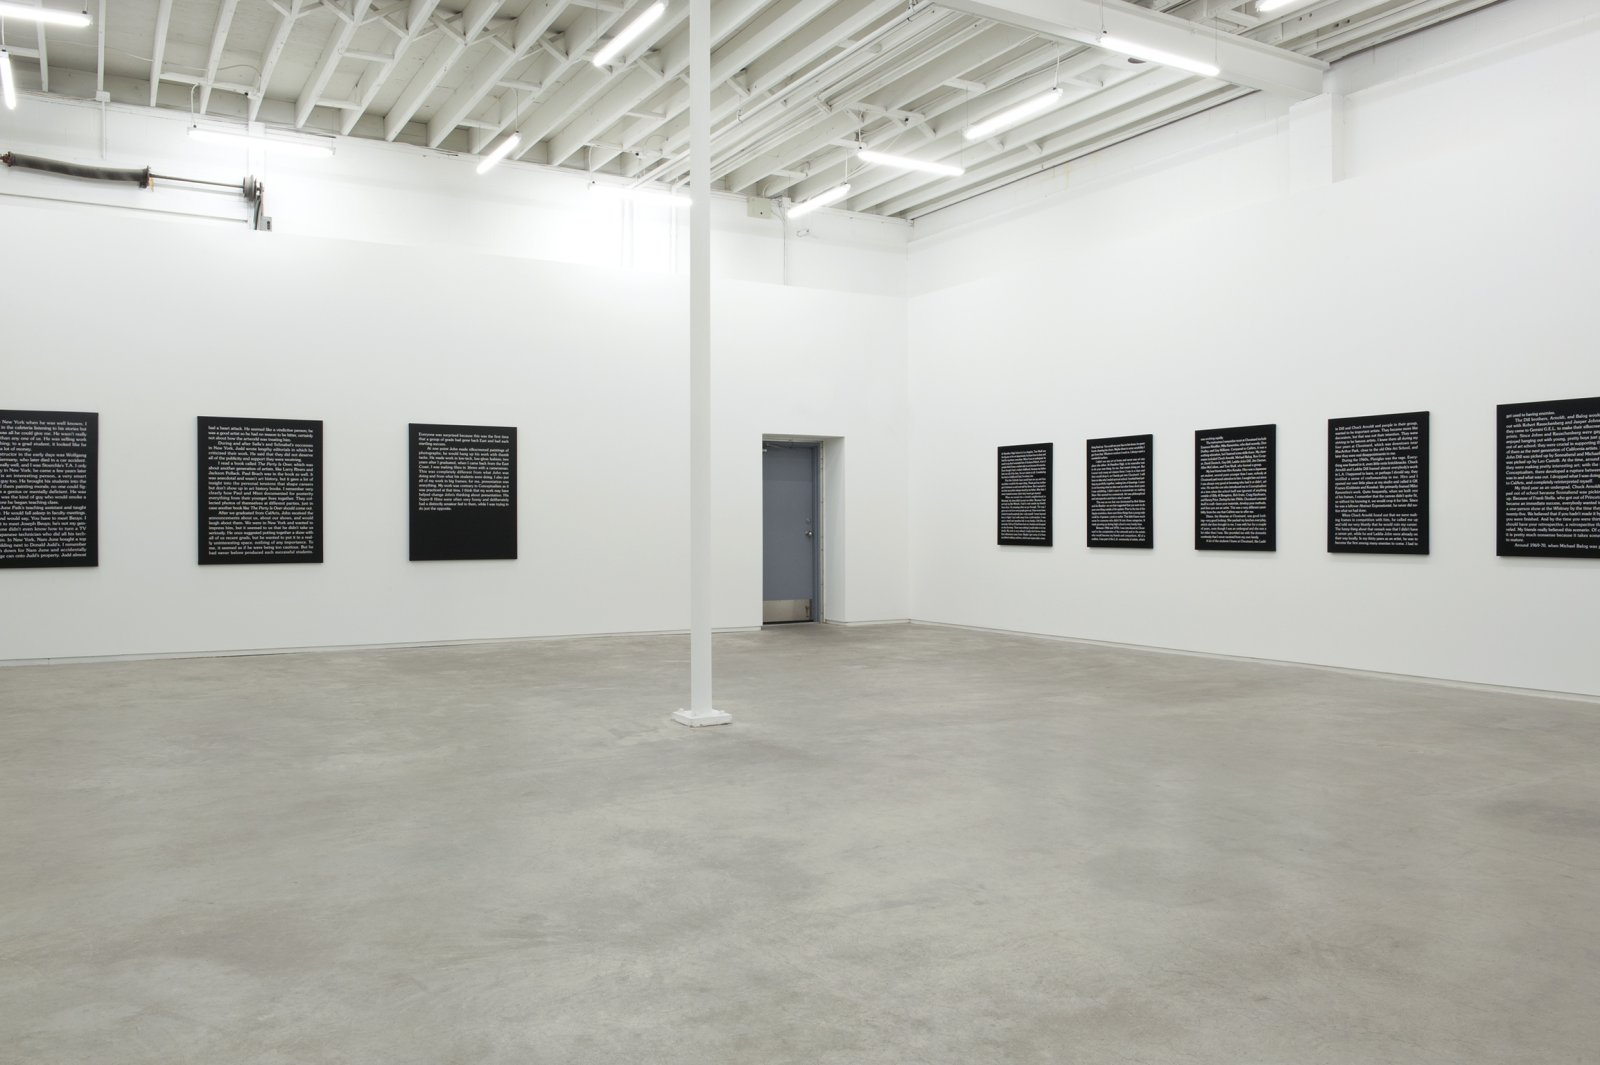 Ron Terada, installation view, Jack, Catriona Jeffries, 2011 by Ron Terada